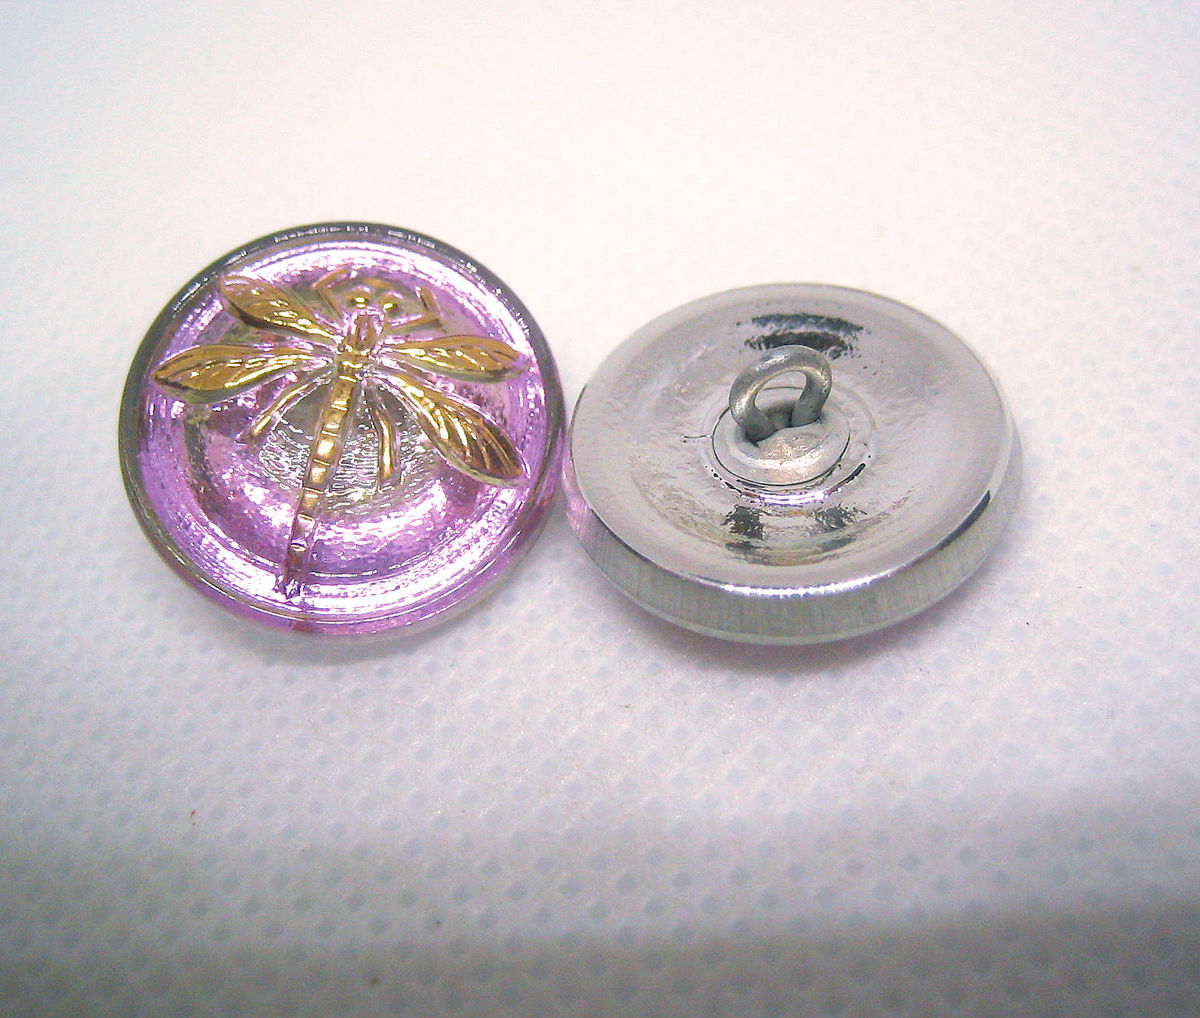 Czech Glass Buttons with Dragonfly 18mm 6 pieces - product images  of